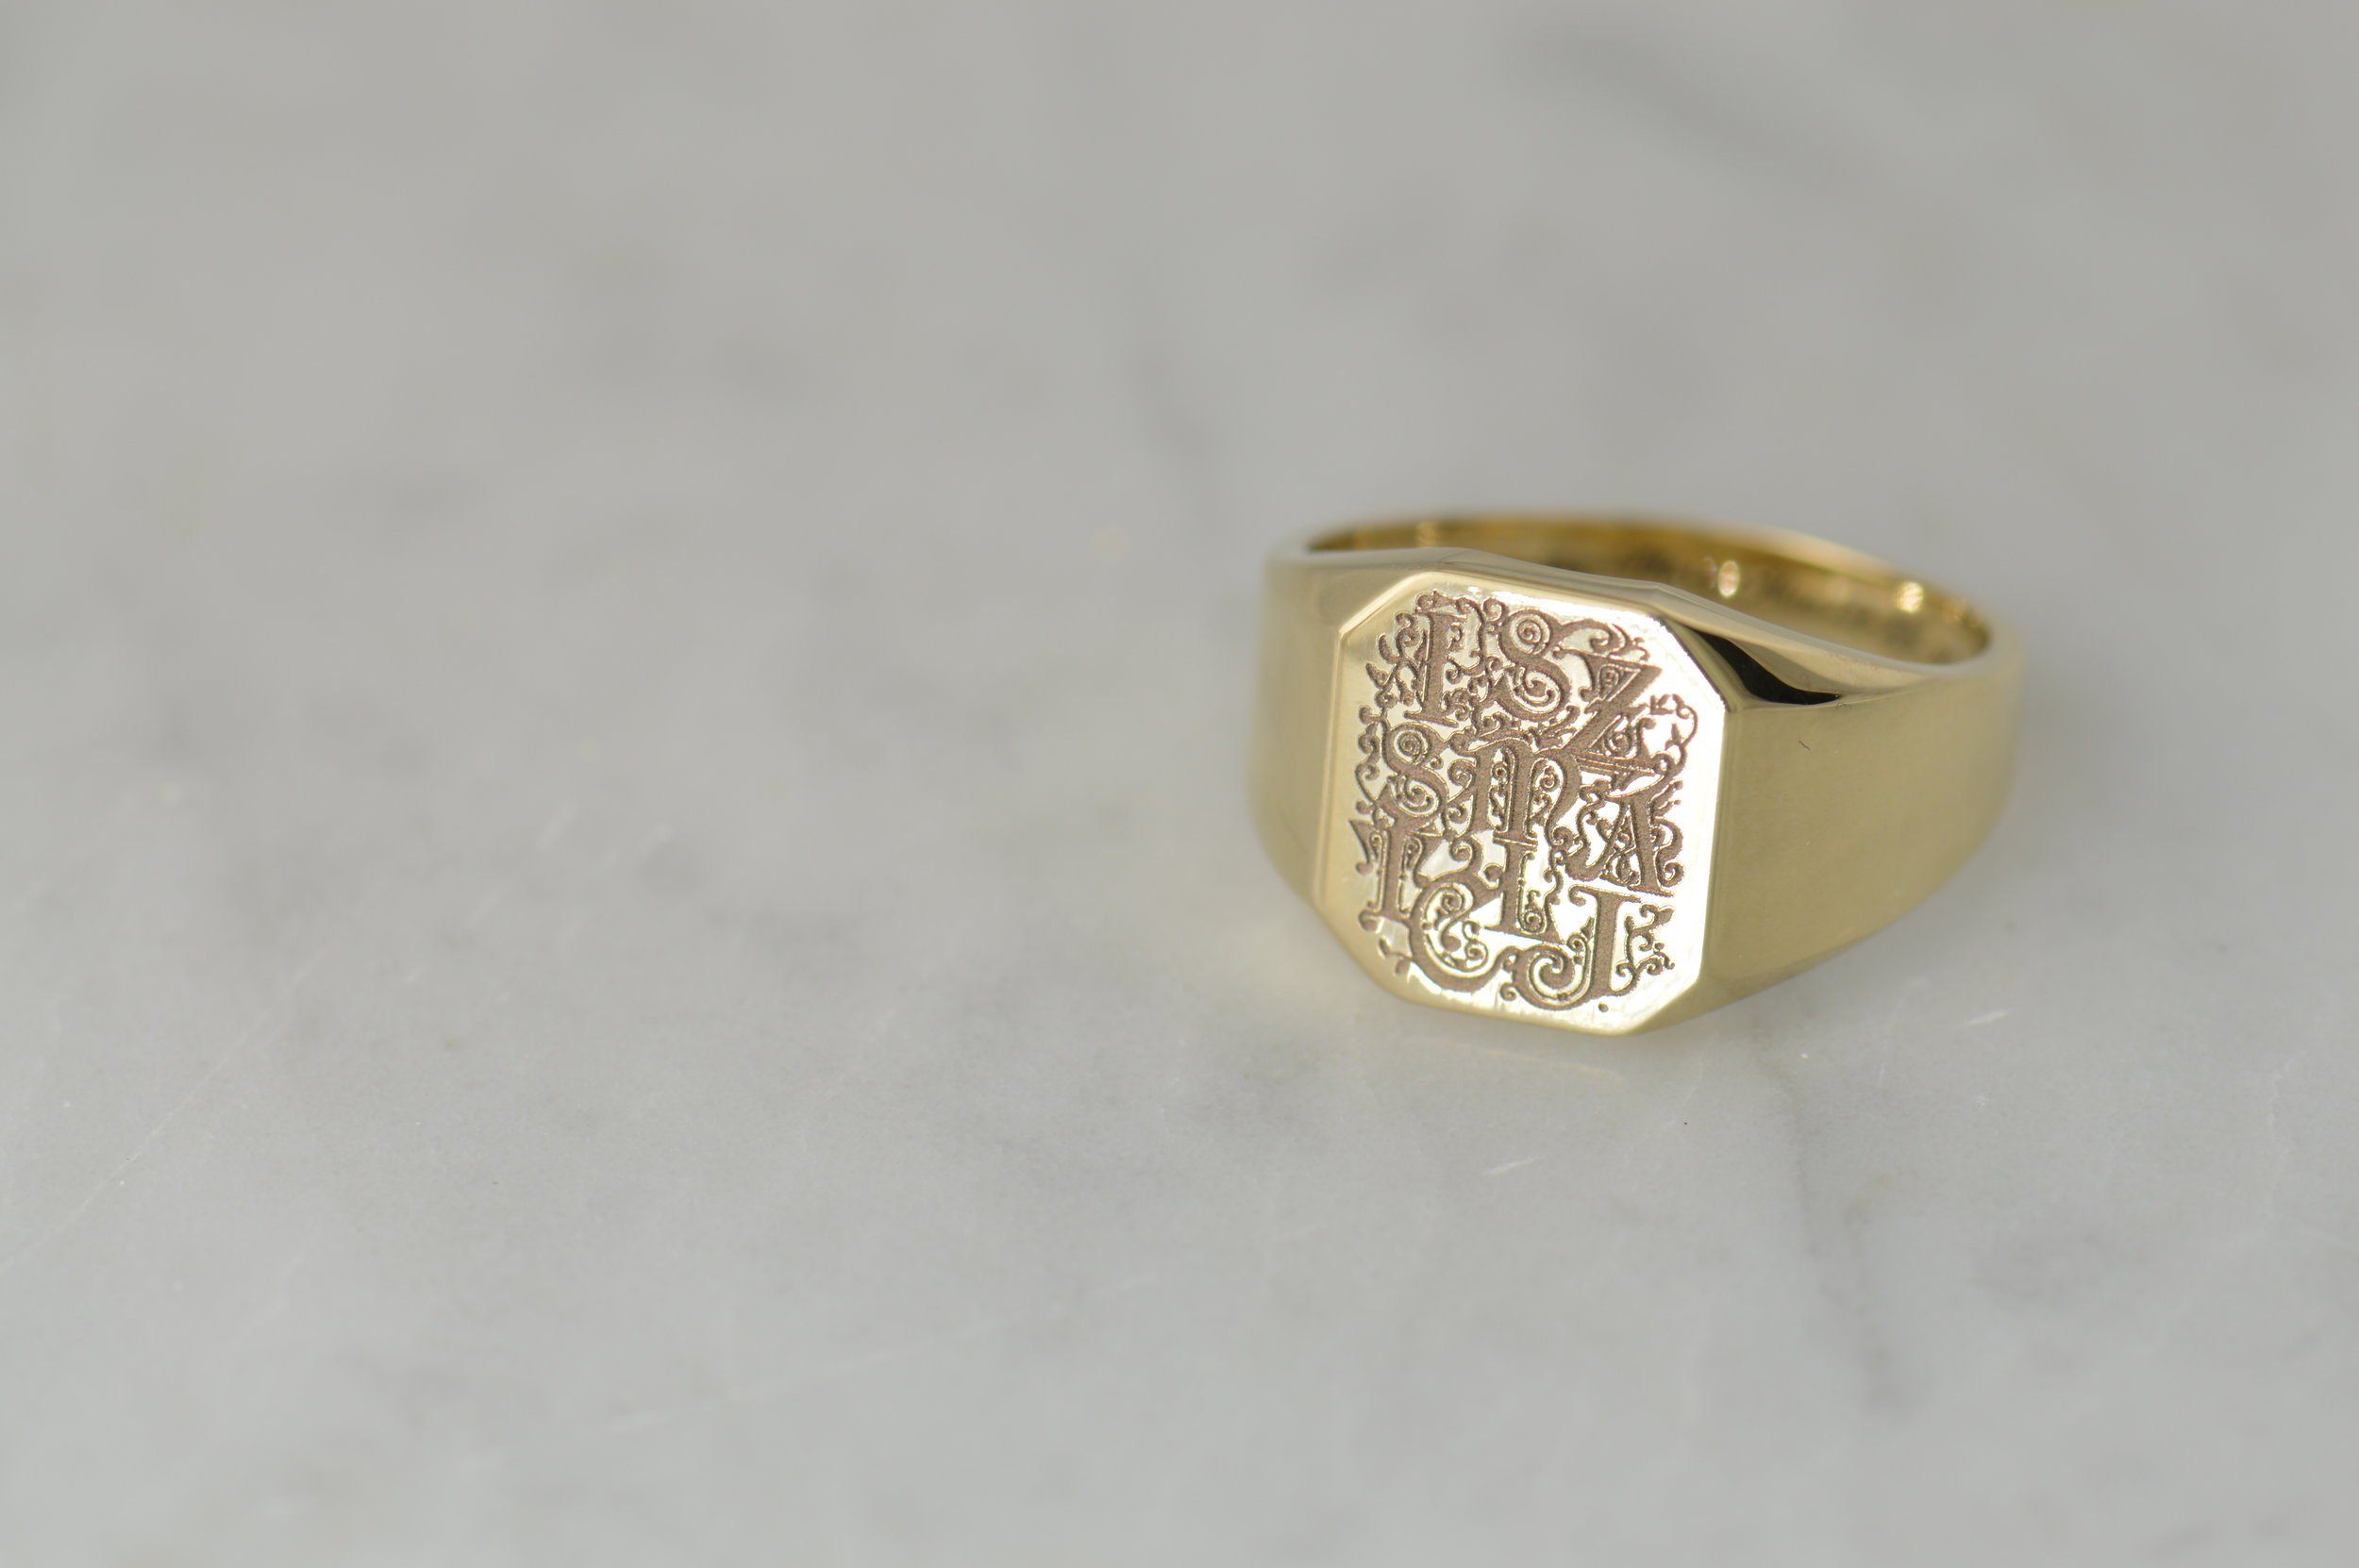 Hand drawn family engraving on a gold signet ring.